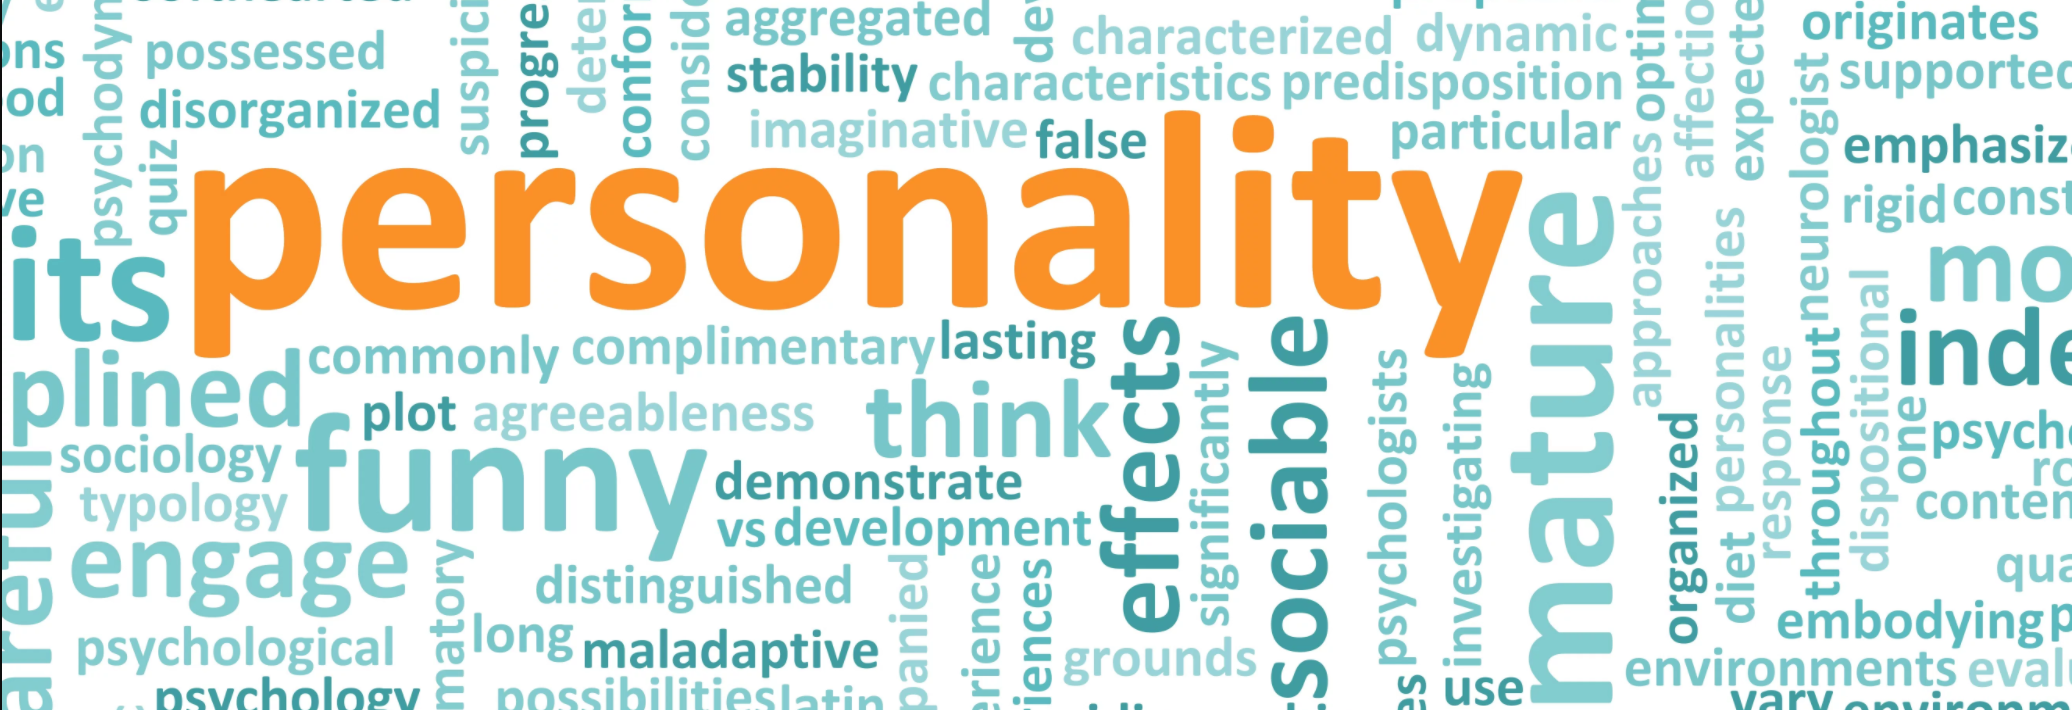 personality type tests mbti obsessed behavior rarest human labeling ourselves why medium many self